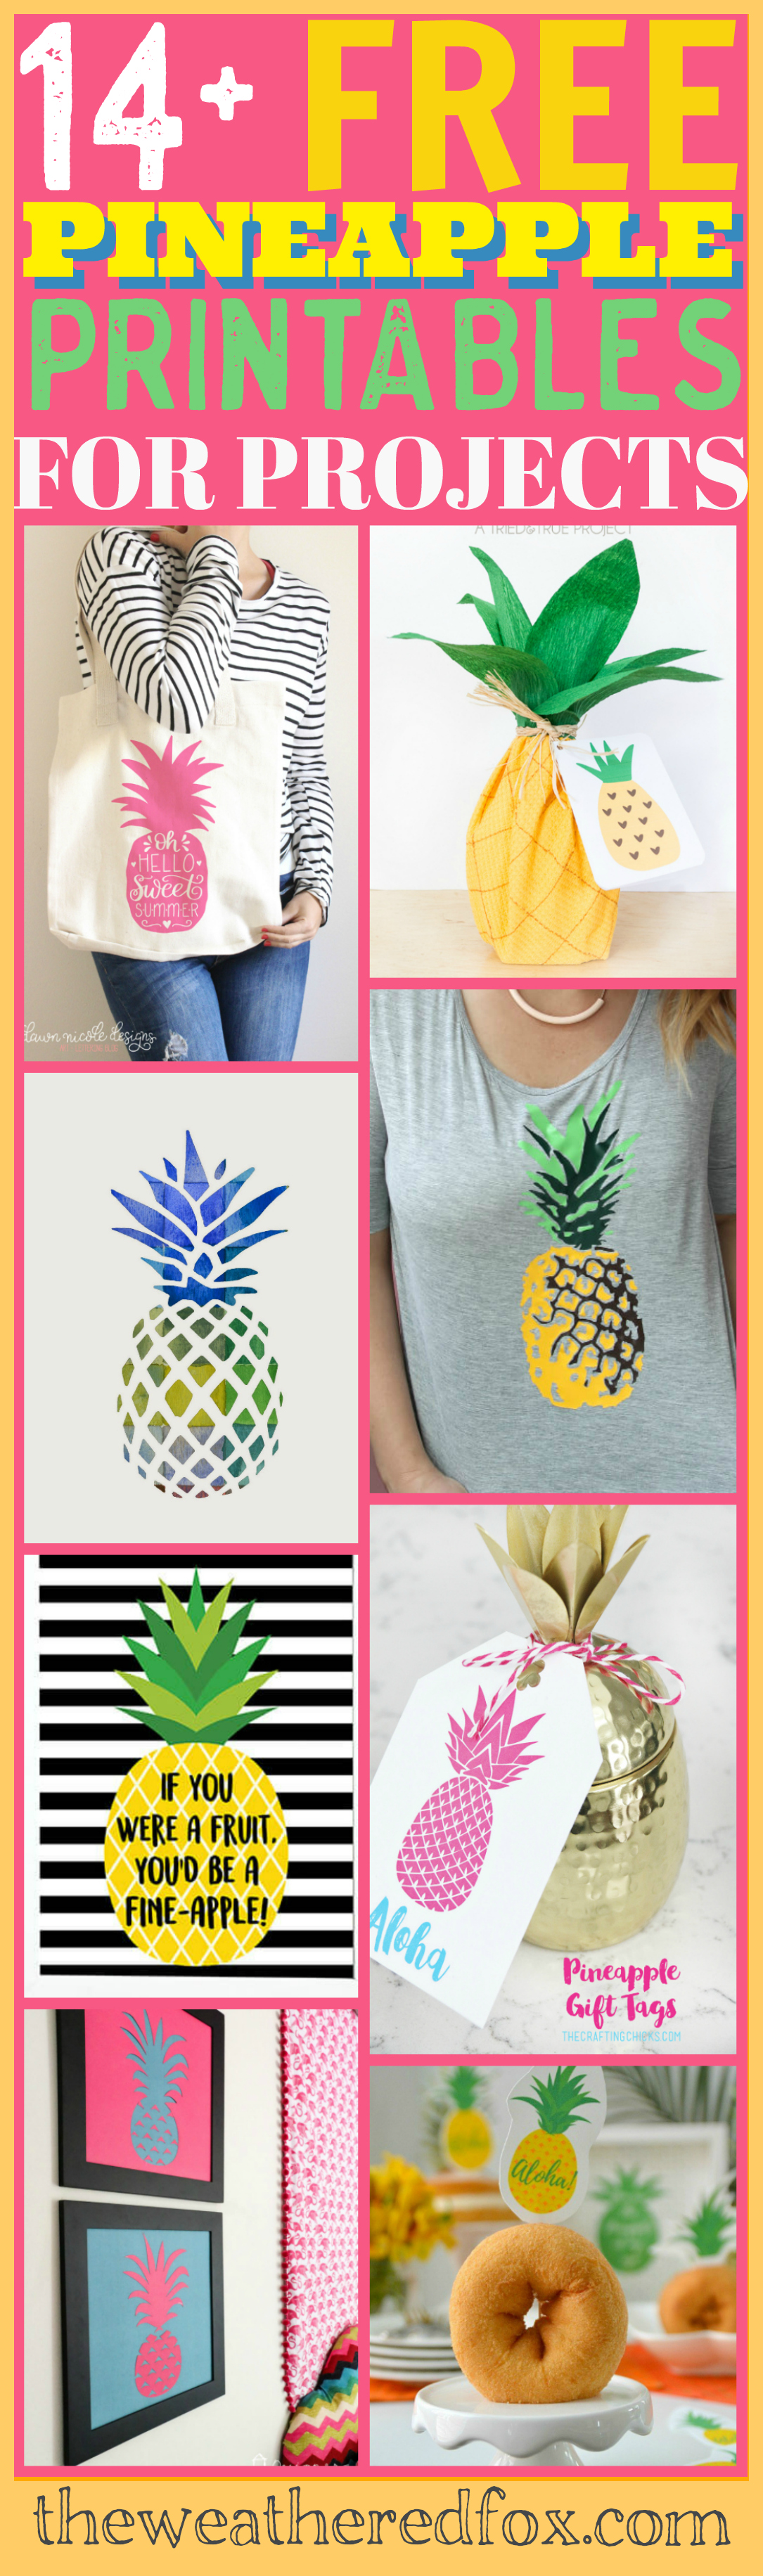 graphic regarding Free Printable Pineapple identified as Pineapple Printables for Your Up coming Undertaking! - The Weathered Fox